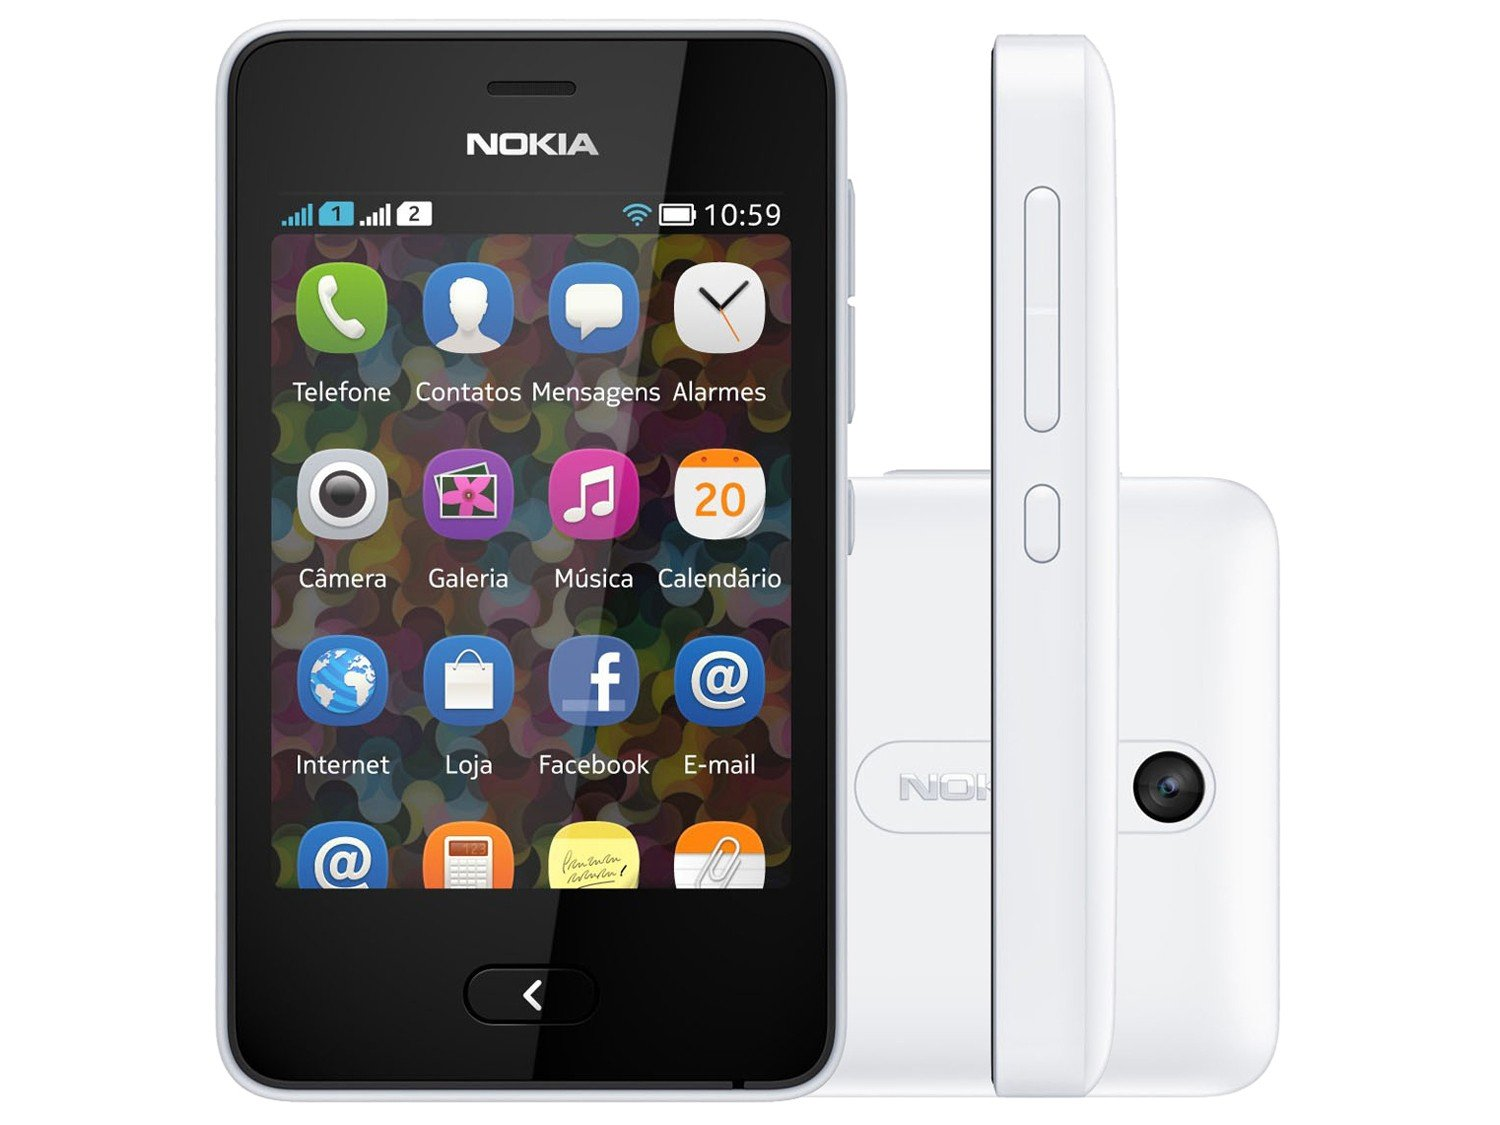 smartphone-nokia-asha-501-dual-chip-camera-3.2mp-tela-3-wi-fi-bluetooth-radio-fm-mp3-cartao-4gb